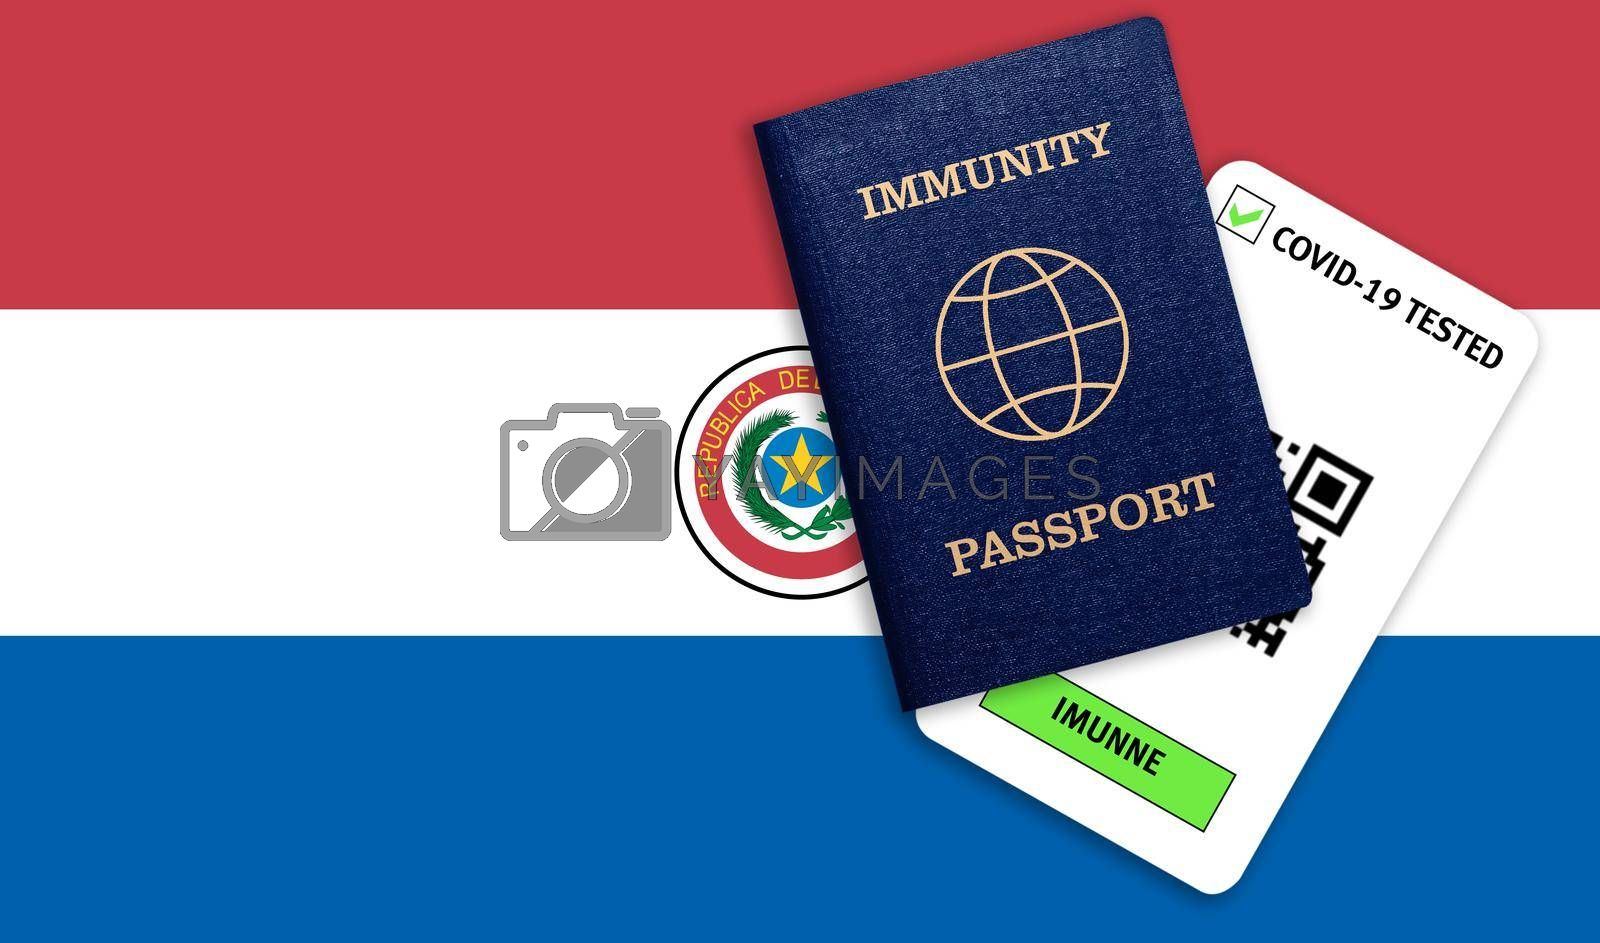 Concept of Immunity passport, certificate for traveling after pandemic for people who have had coronavirus or made vaccine and test result for COVID-19 on flag of Paraguay